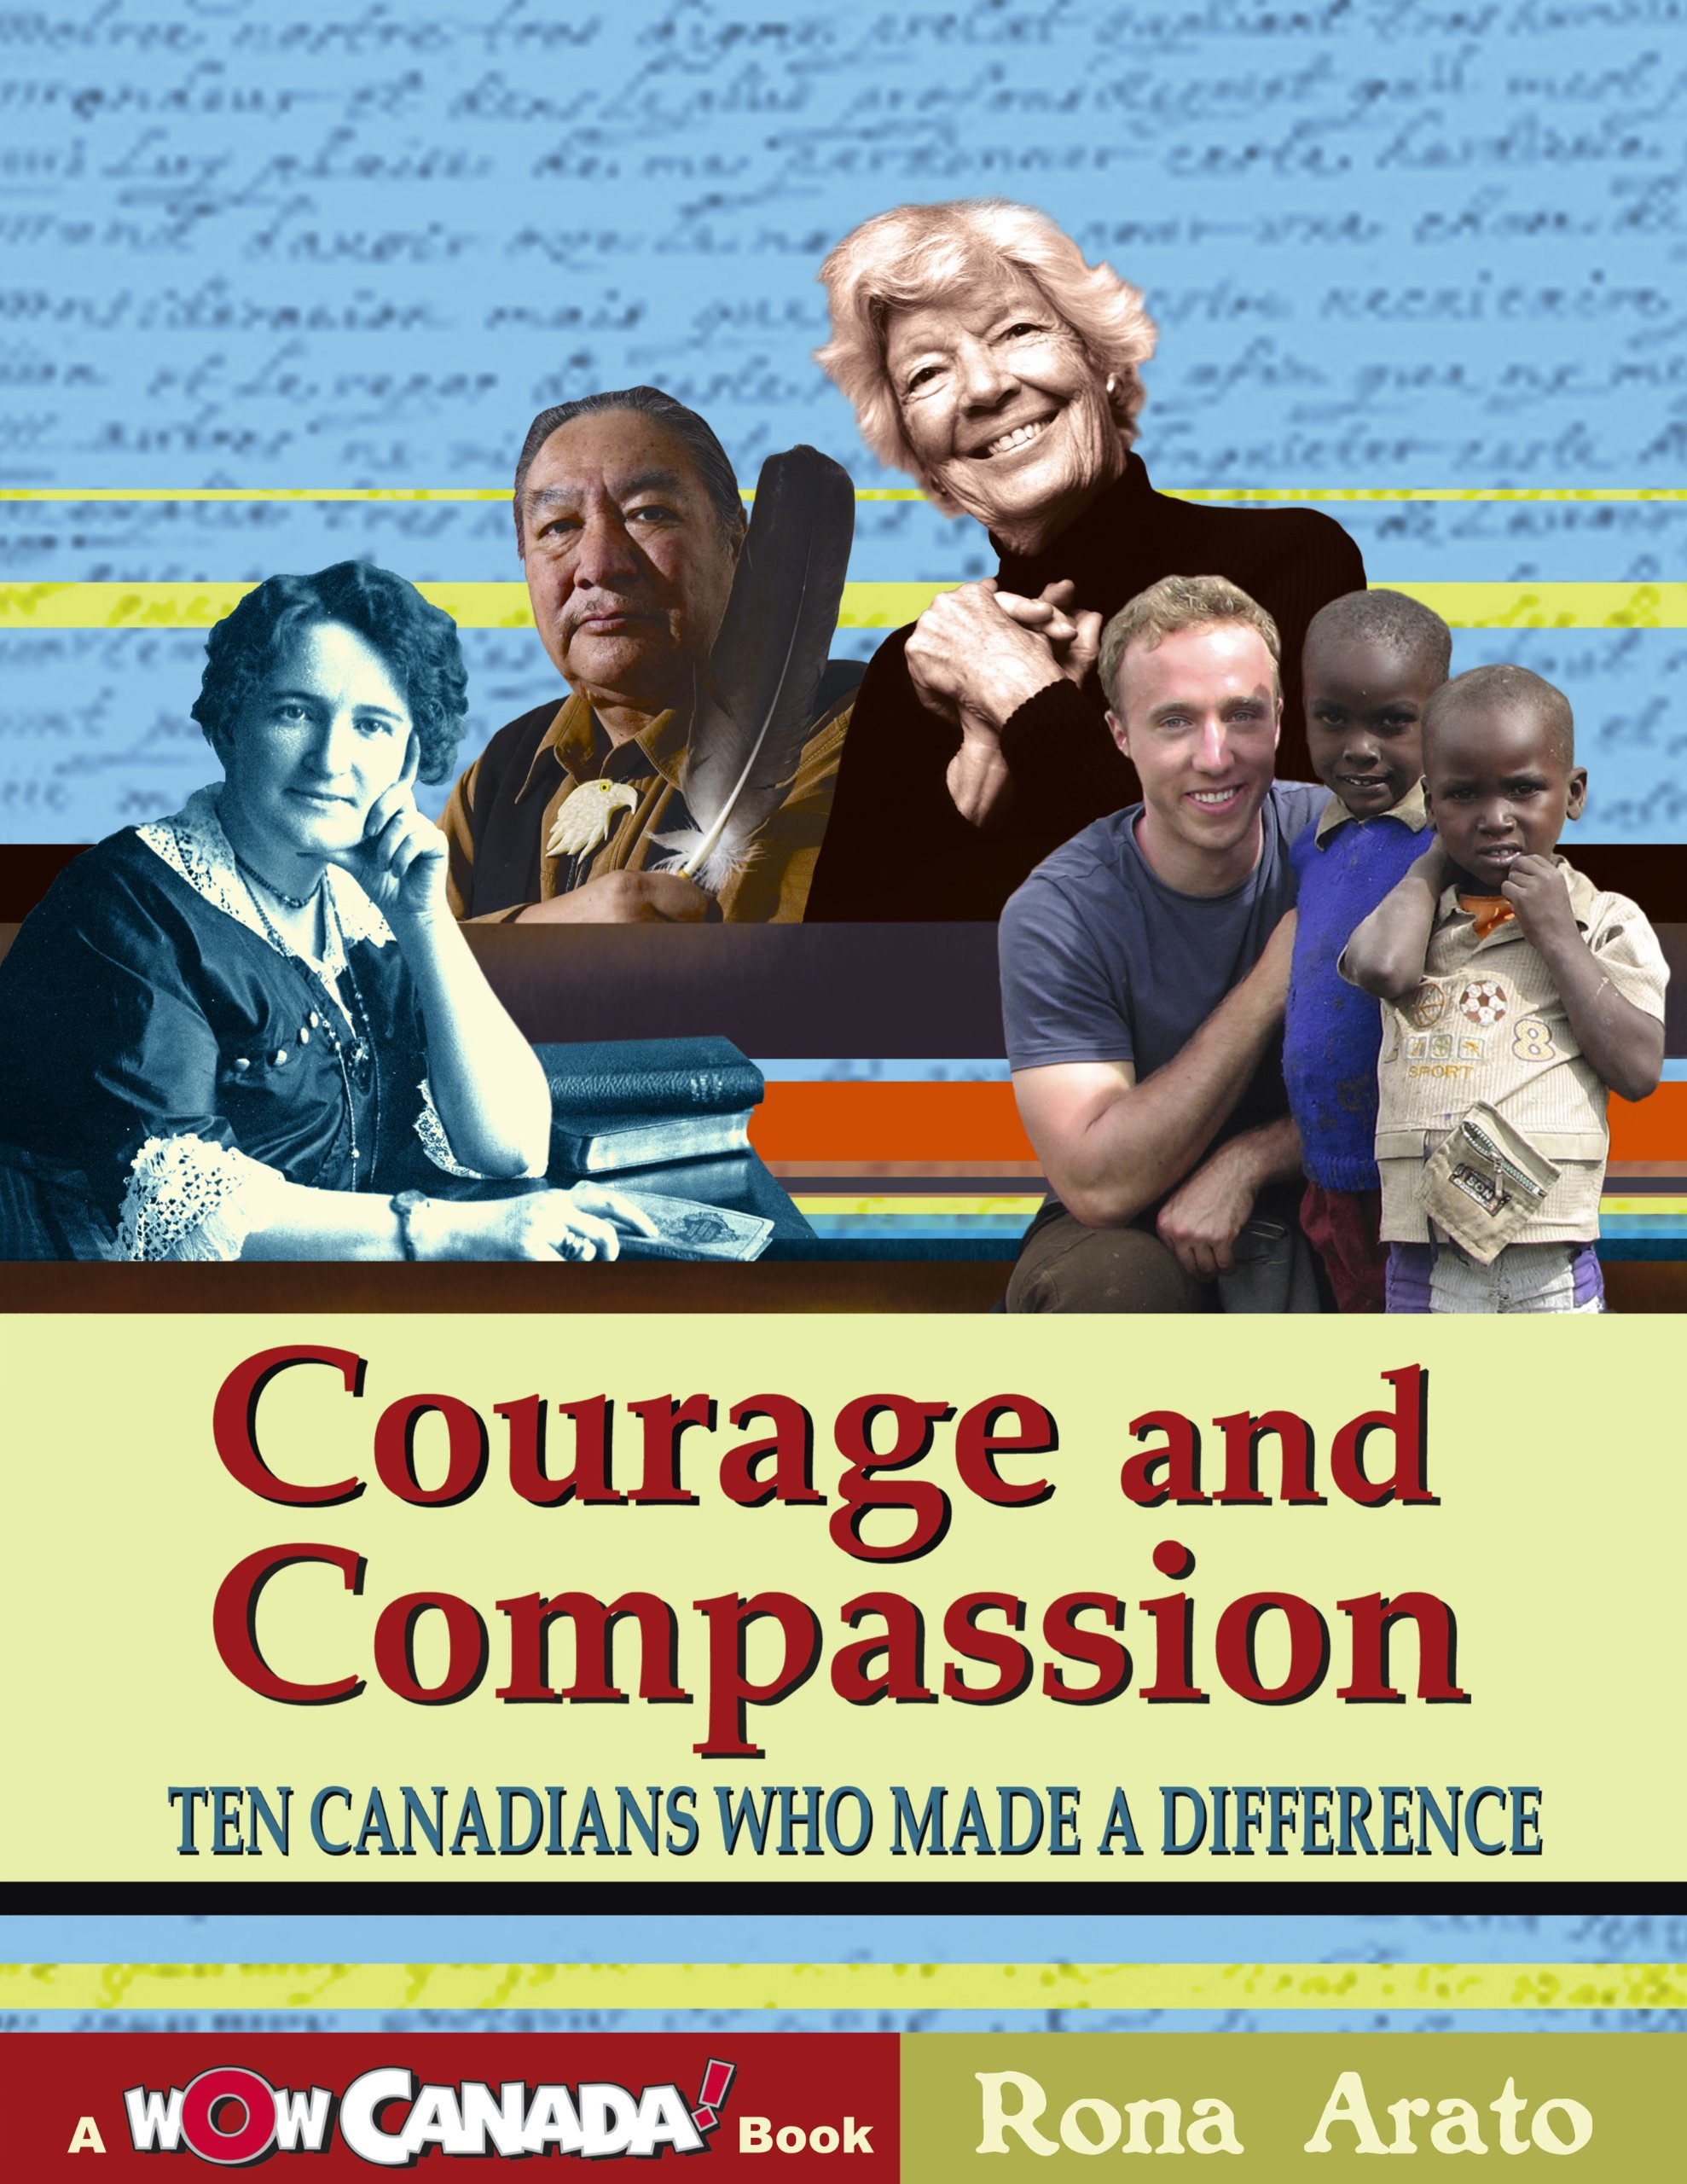 Courage and Compassion: Ten Canadians Who Made A Difference (Wow Canada! Collection)